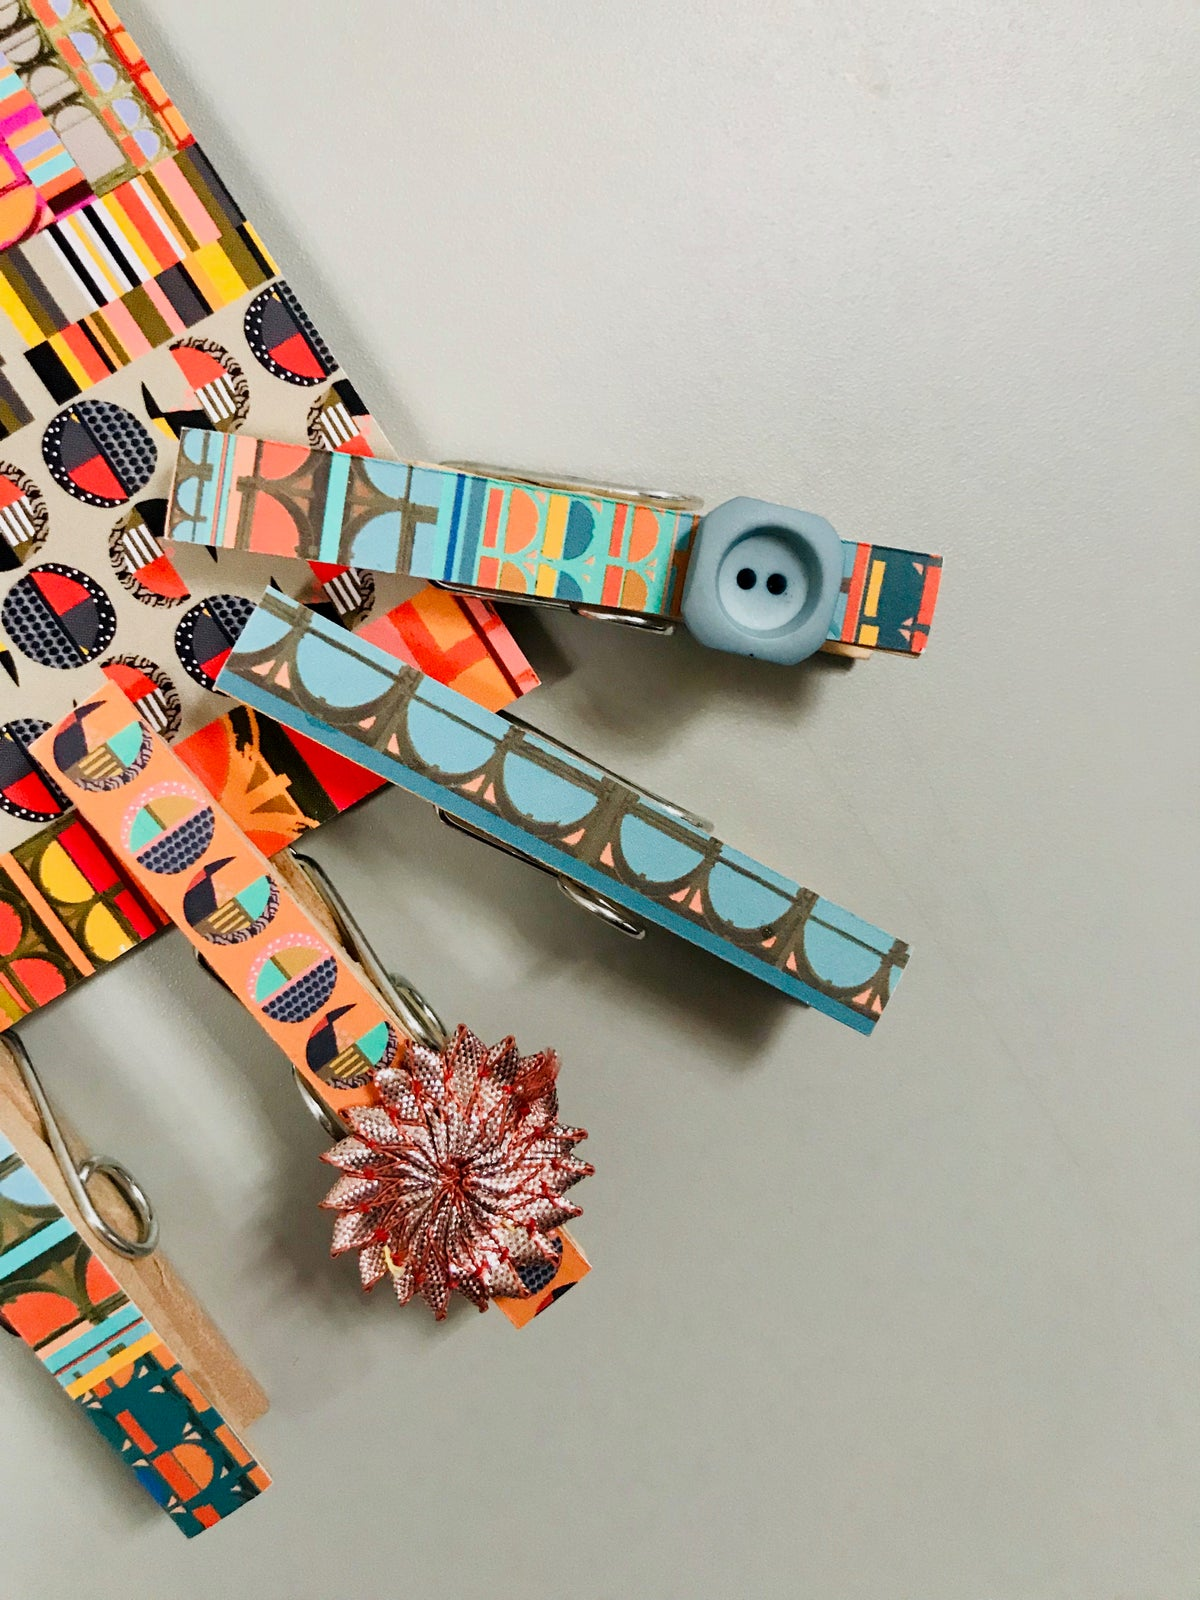 Image of Pimped Pegs